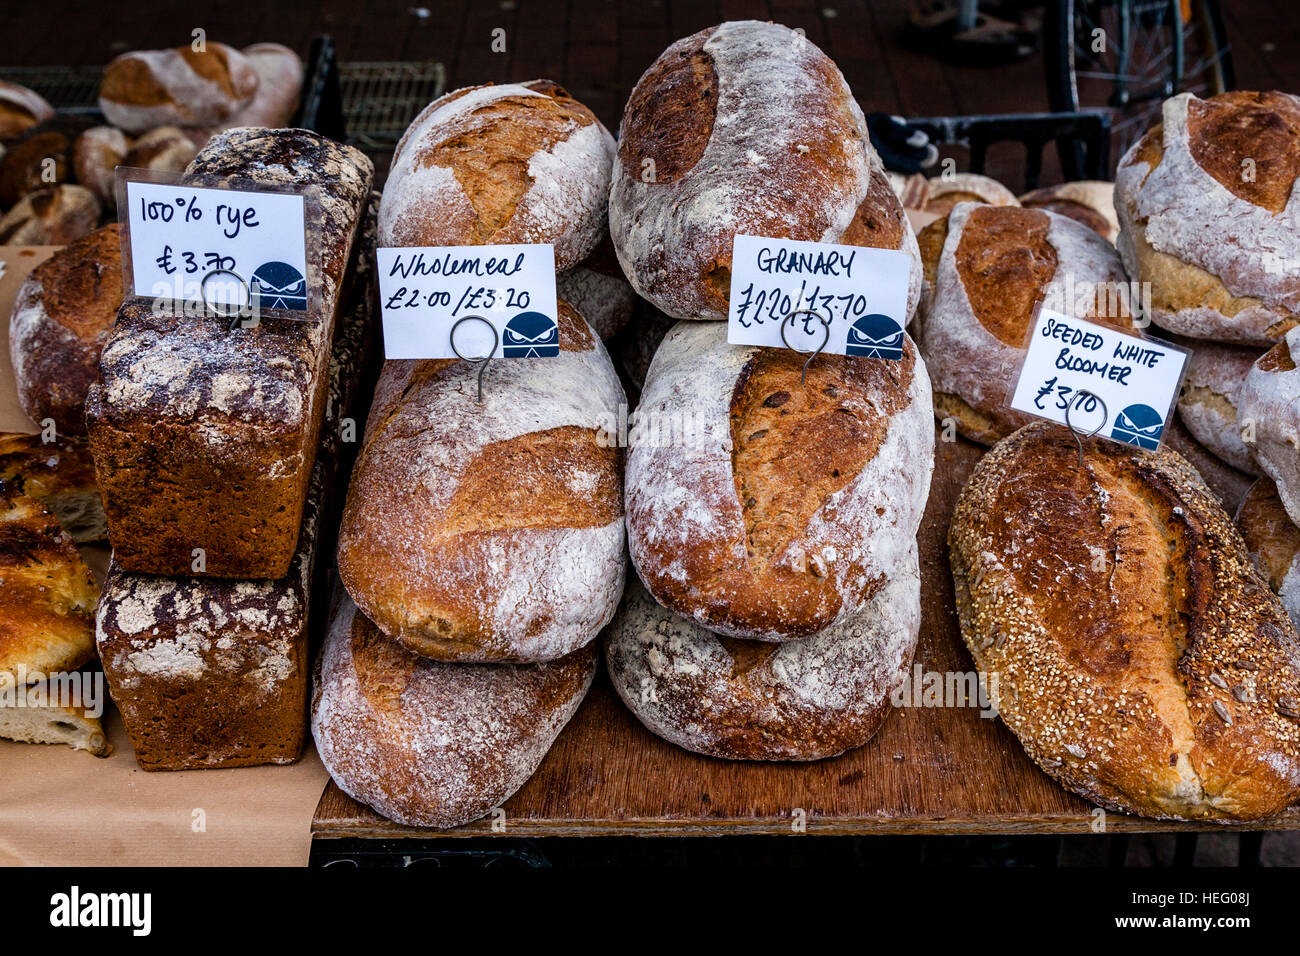 Loaves Of Bread Available At A Farmers Market, Lewes, Sussex, UK - Stock Image